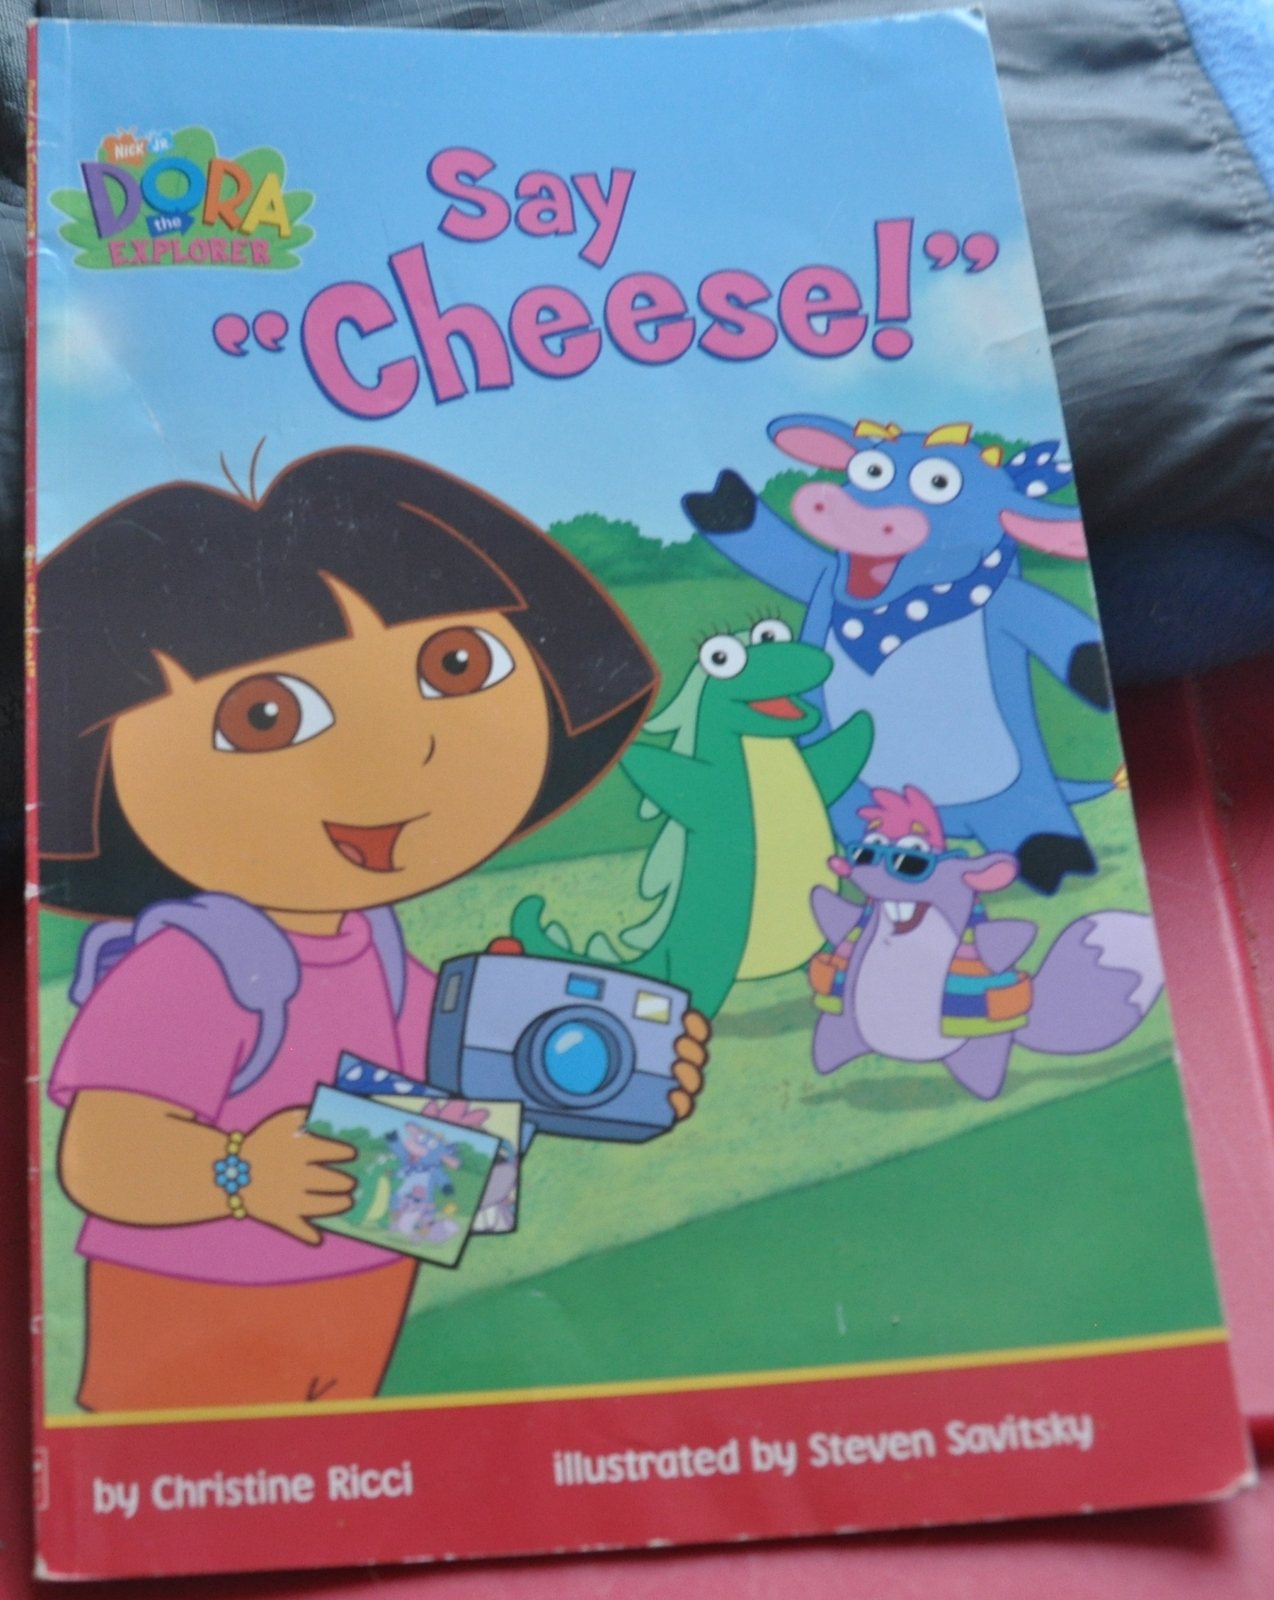 Dora say cheese   cover